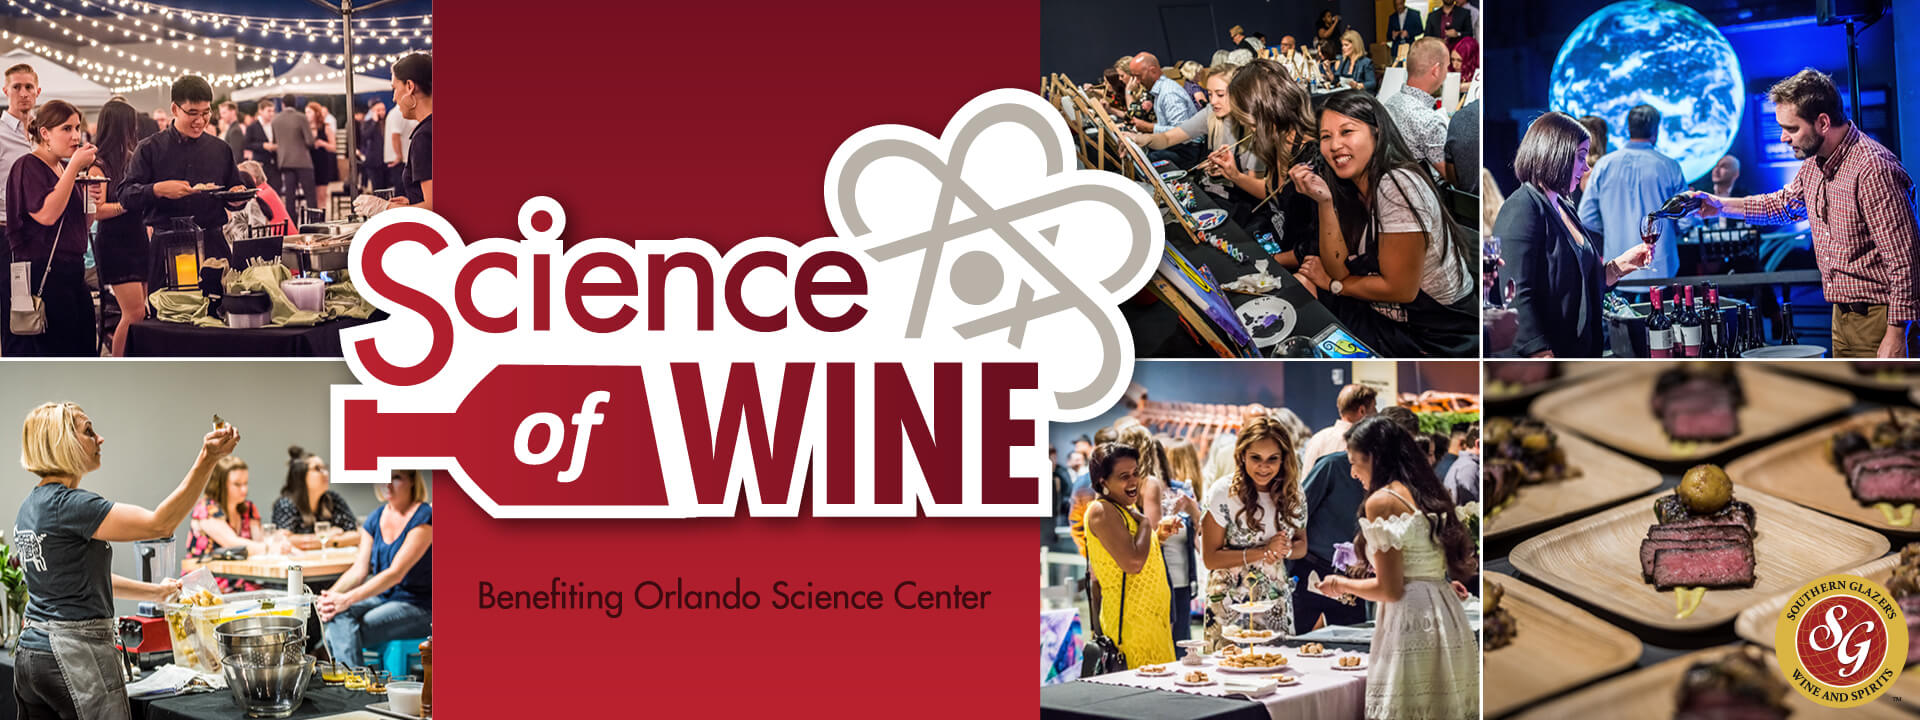 Science of Wine logo and photos of guests enjoying the event.